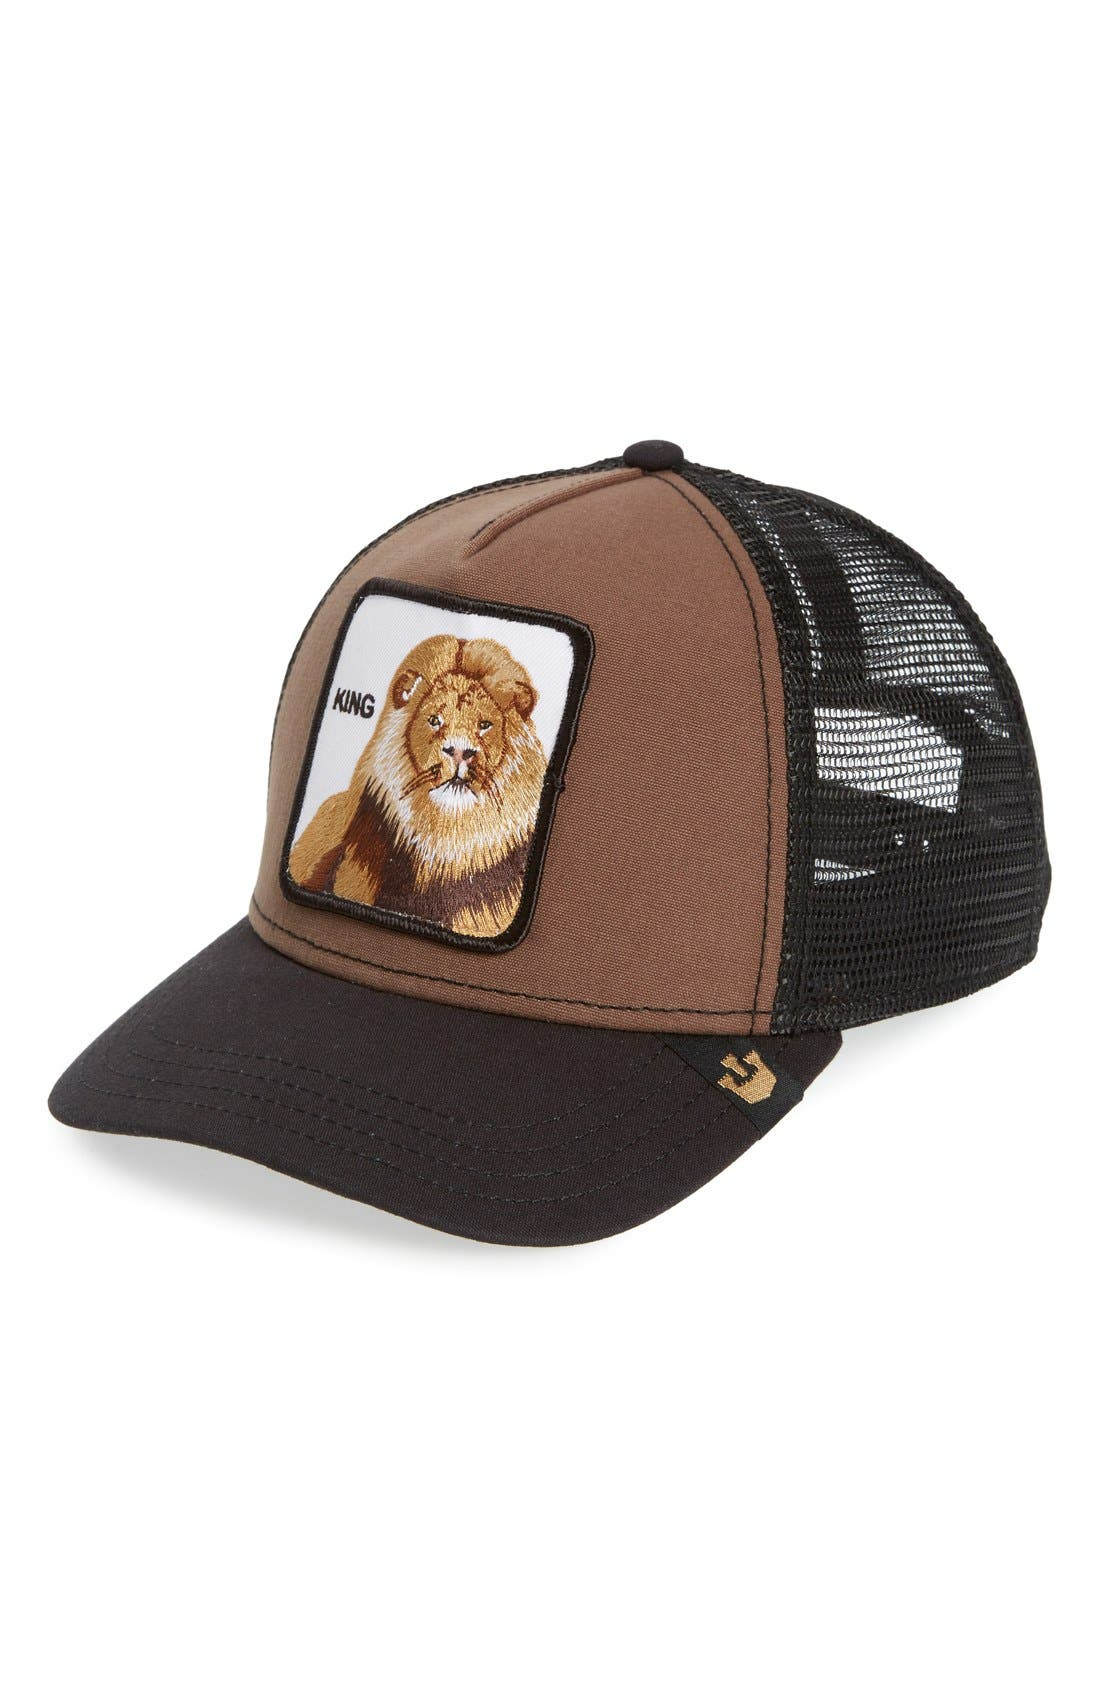 'Animal Farm - King' Trucker Hat,                         Main,                         color, Brown